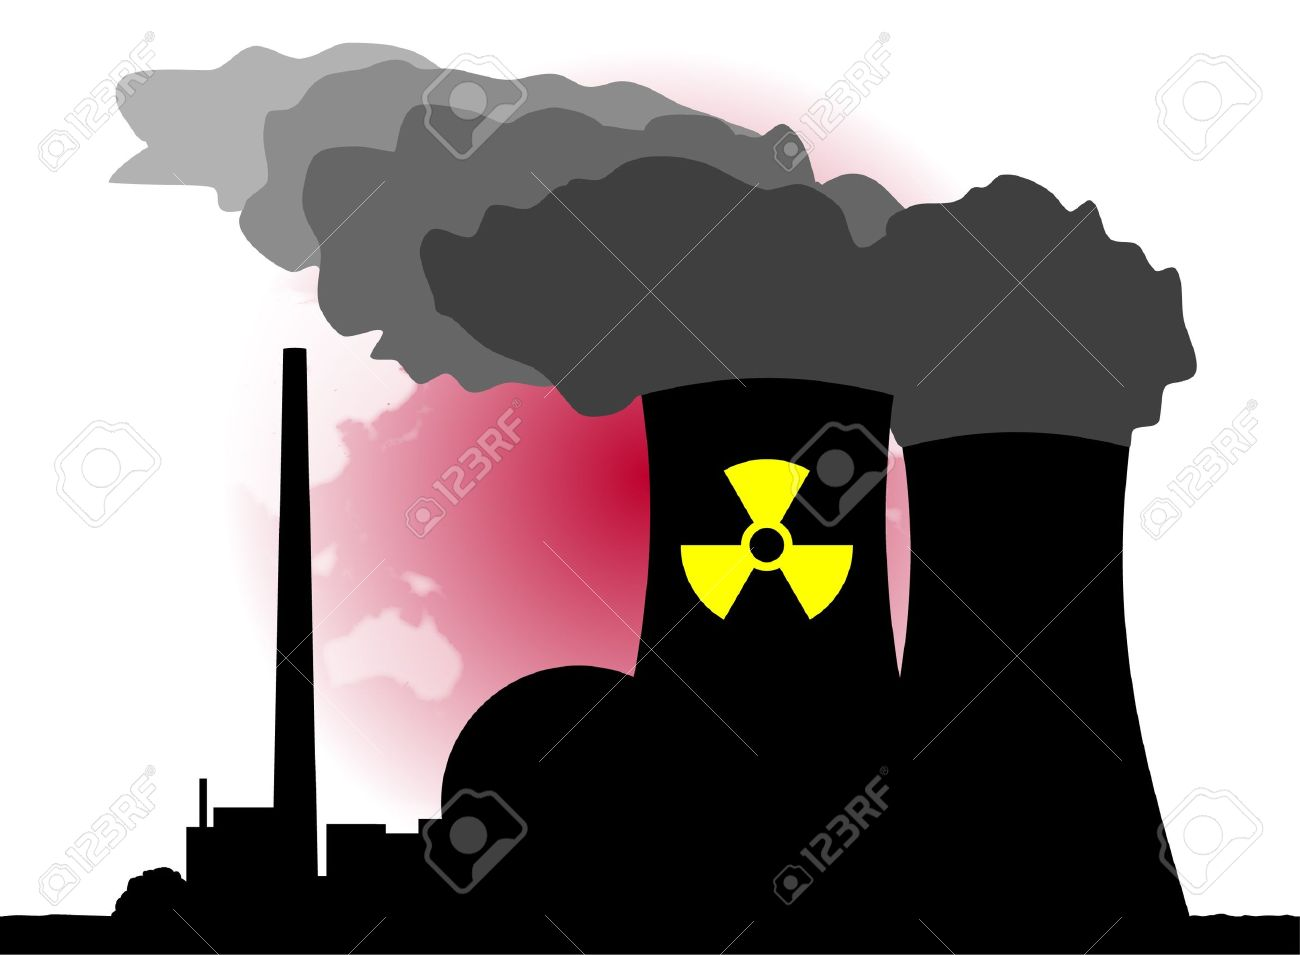 Nuke clipart nuclear power. Cliparts free download best